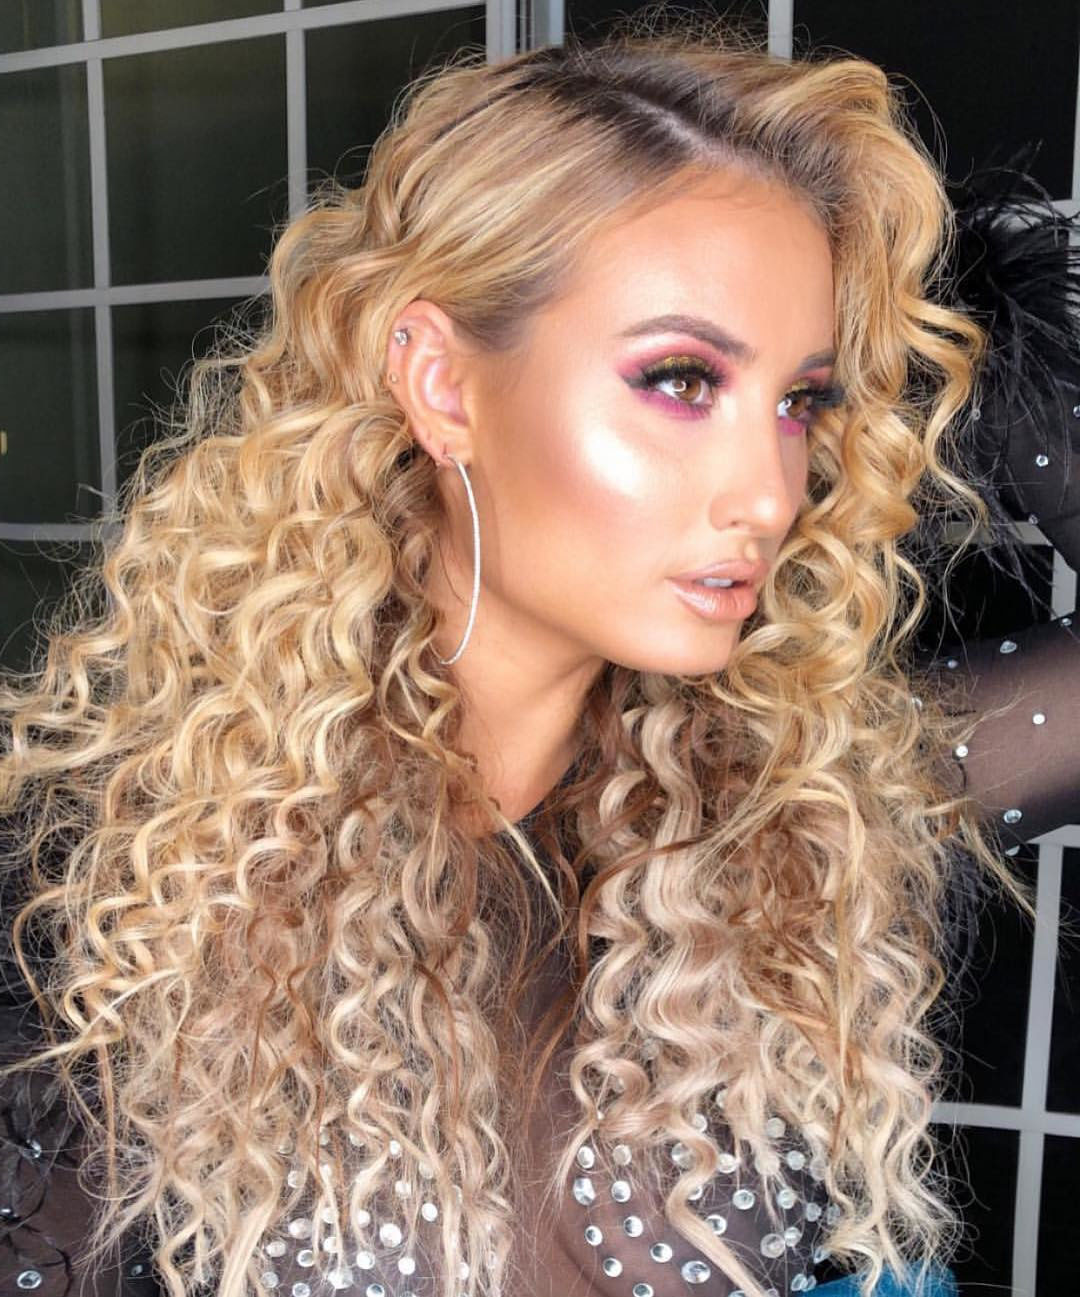 Long Hairstyle for Females with Blonde Curled Hair